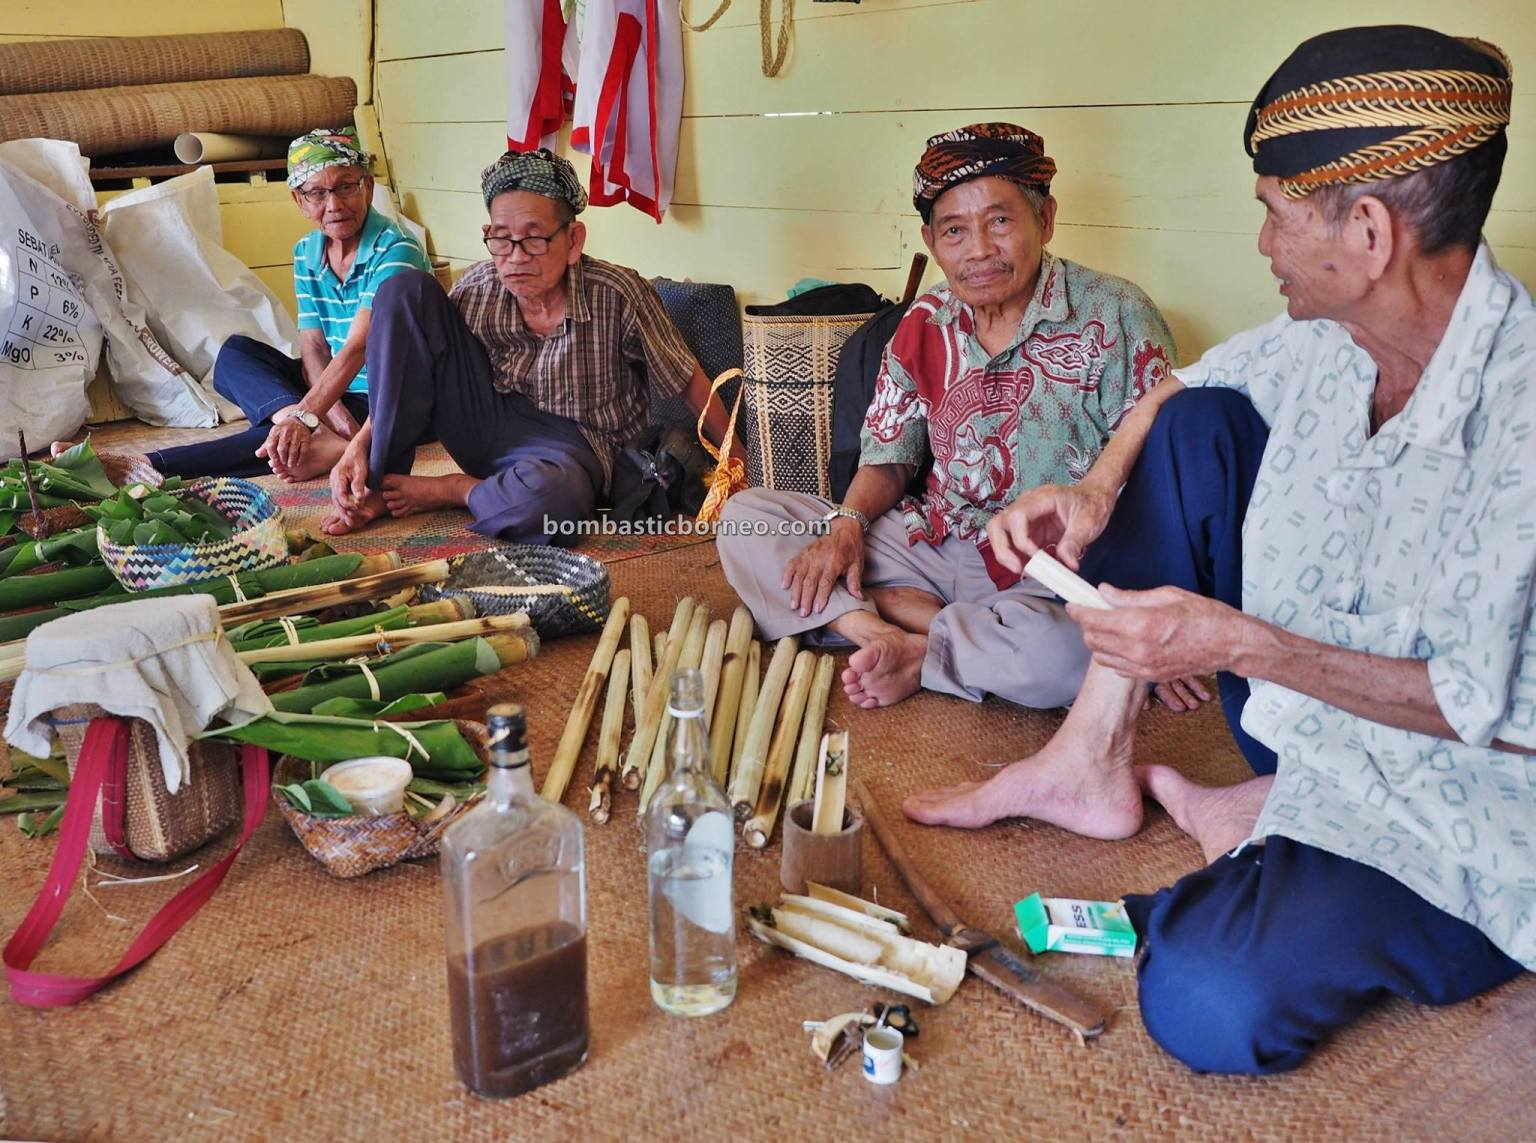 Serasot village, Gawea Sowa, Gawai Dayak, Paddy Harvest Festival, Indigenous, ritual, budaya, backpackers, Kuching, Ethnic, tourism, tourist attraction, travel guide, Cross border, 古晋石隆门土著部落, 砂拉越达雅克丰收节